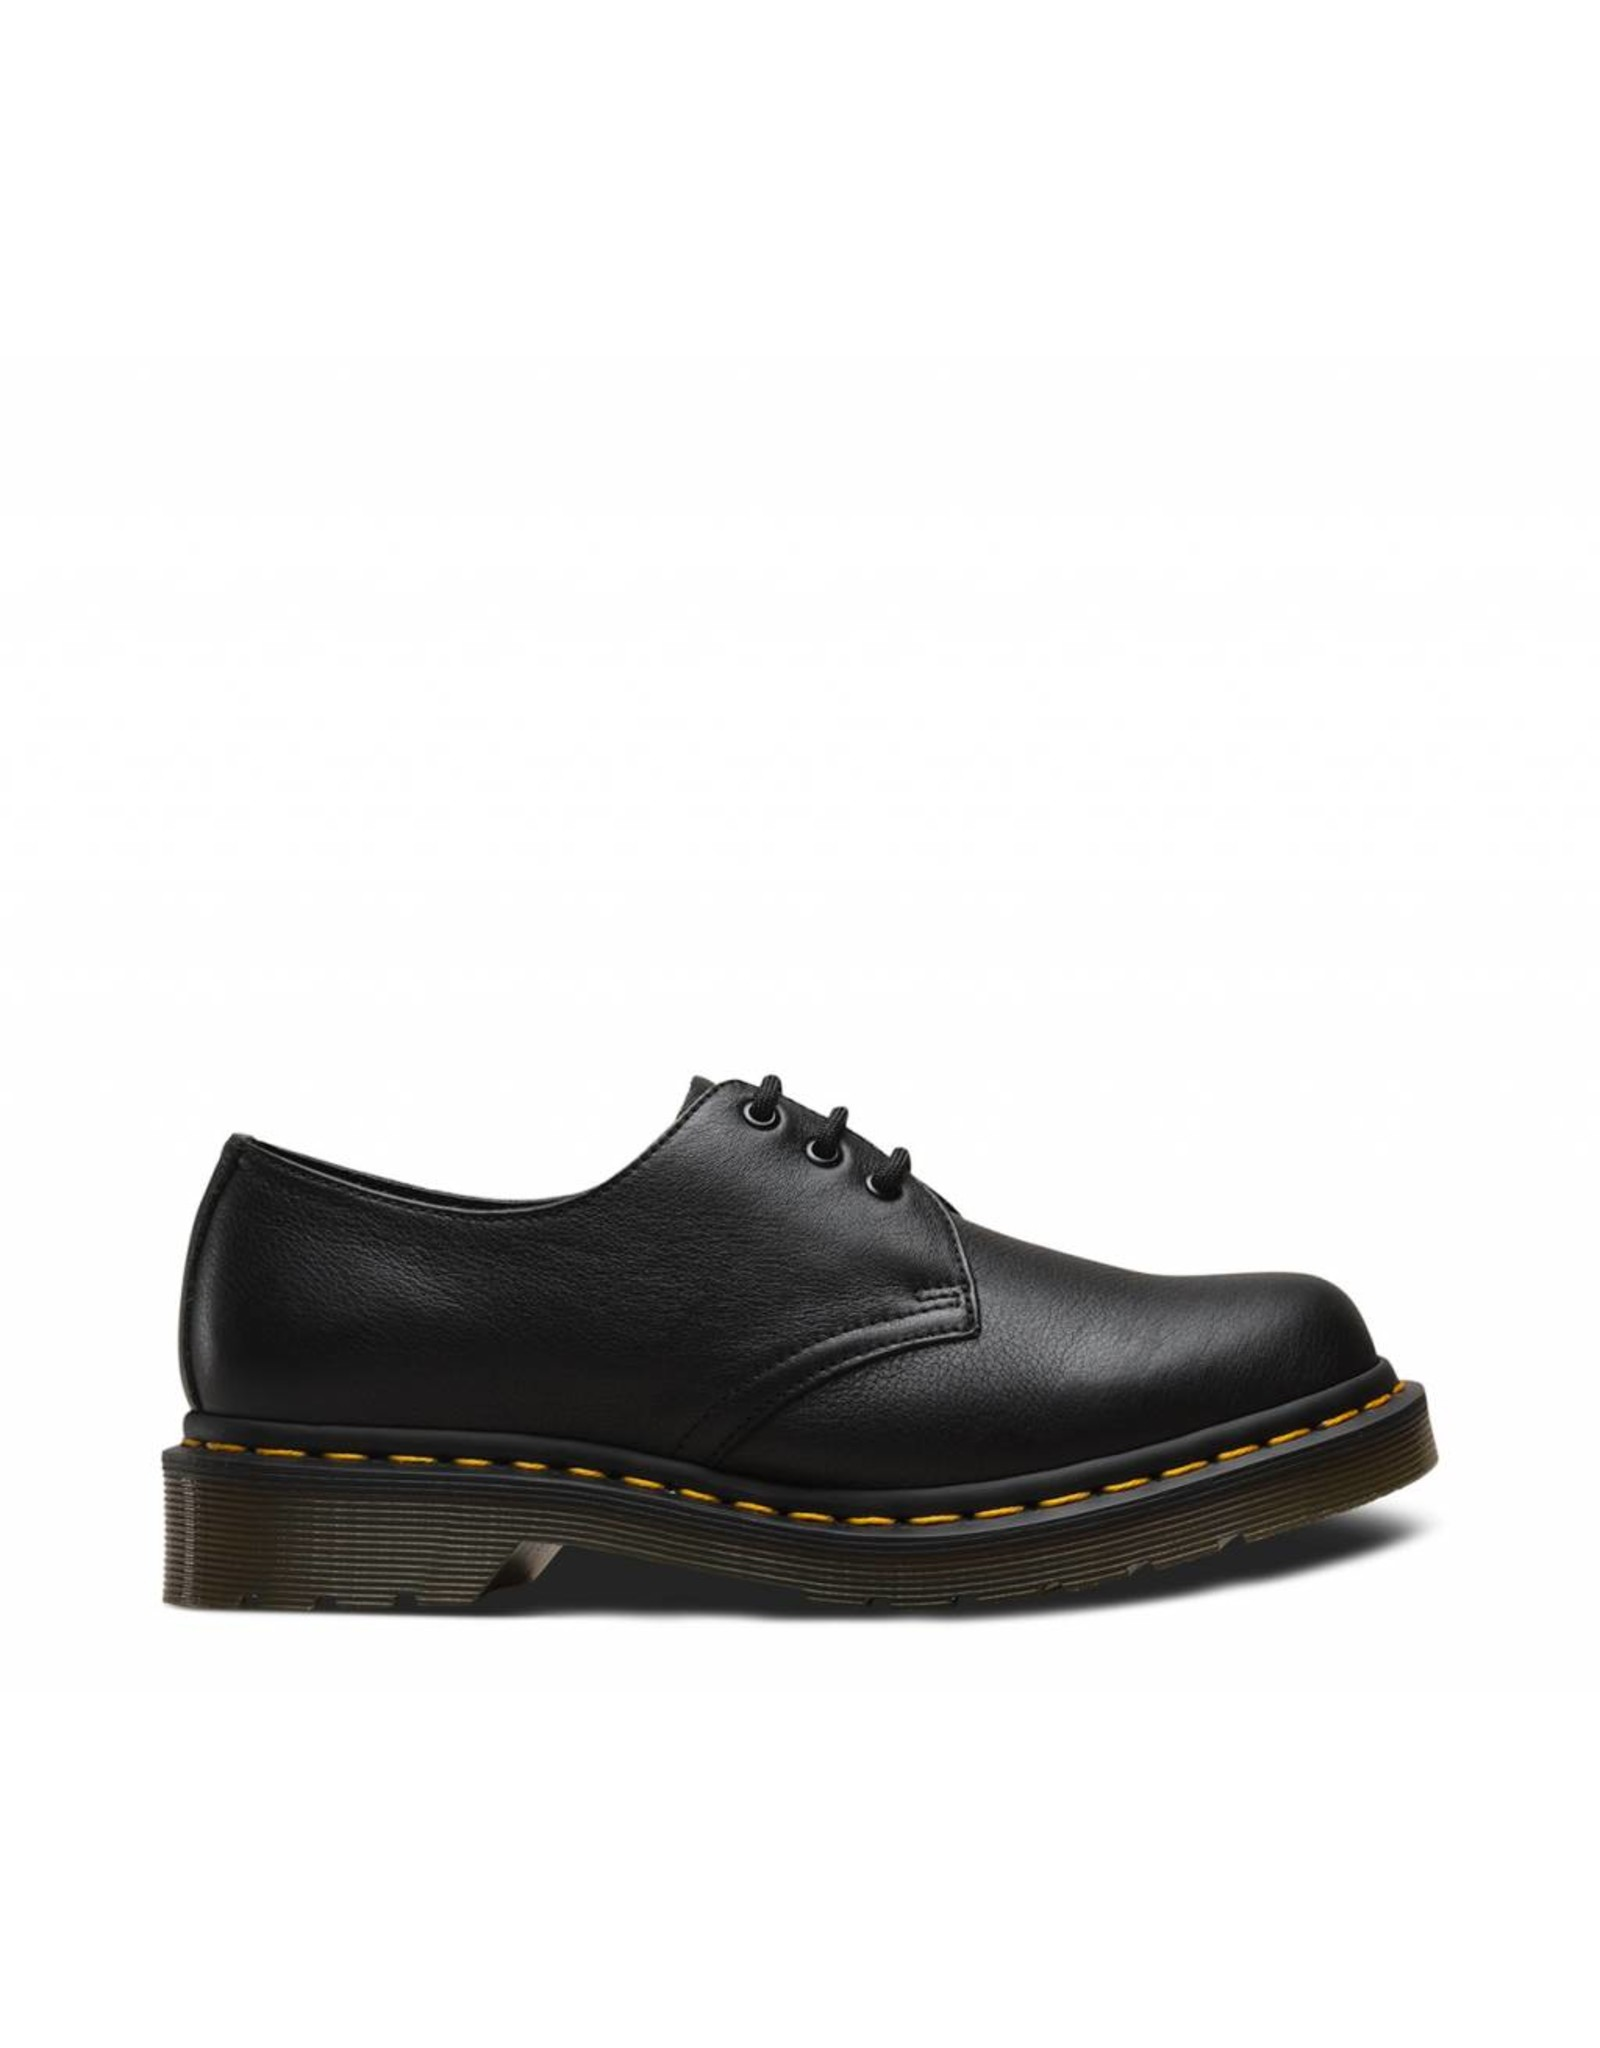 DR. MARTENS 1461 W BLACK VIRGINIA 301BV-R24256001